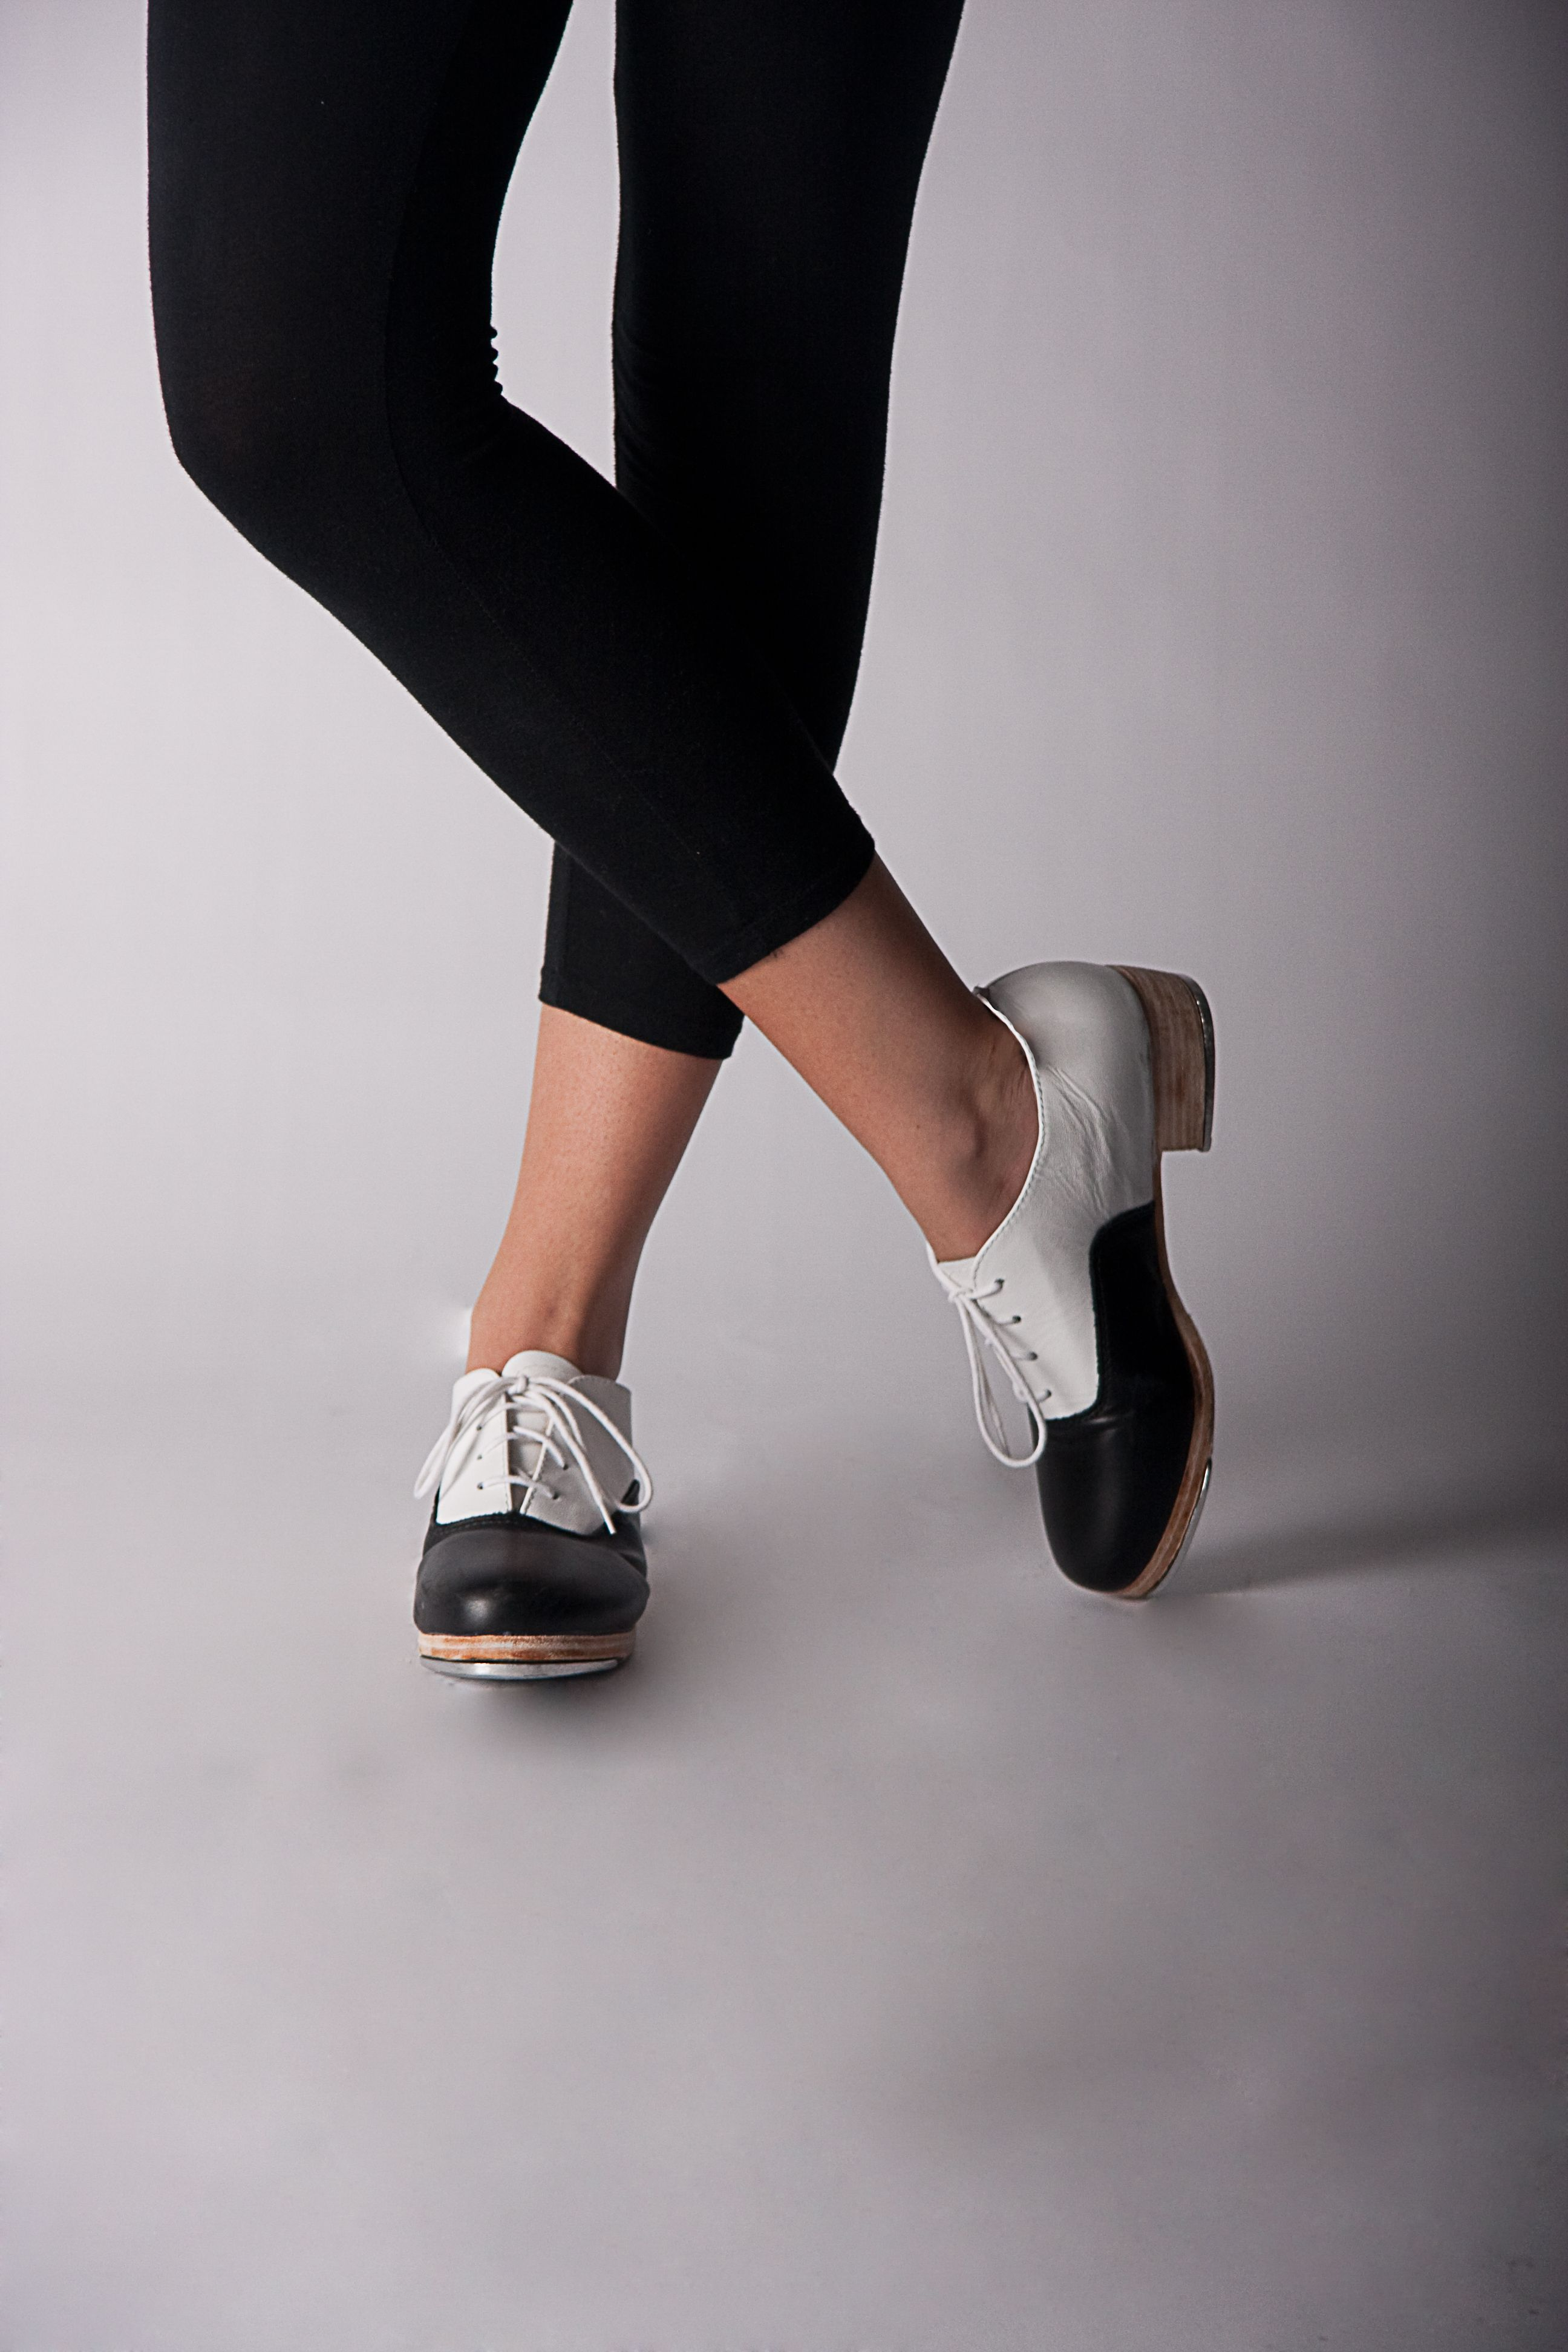 Tap Dance Shoes Photography